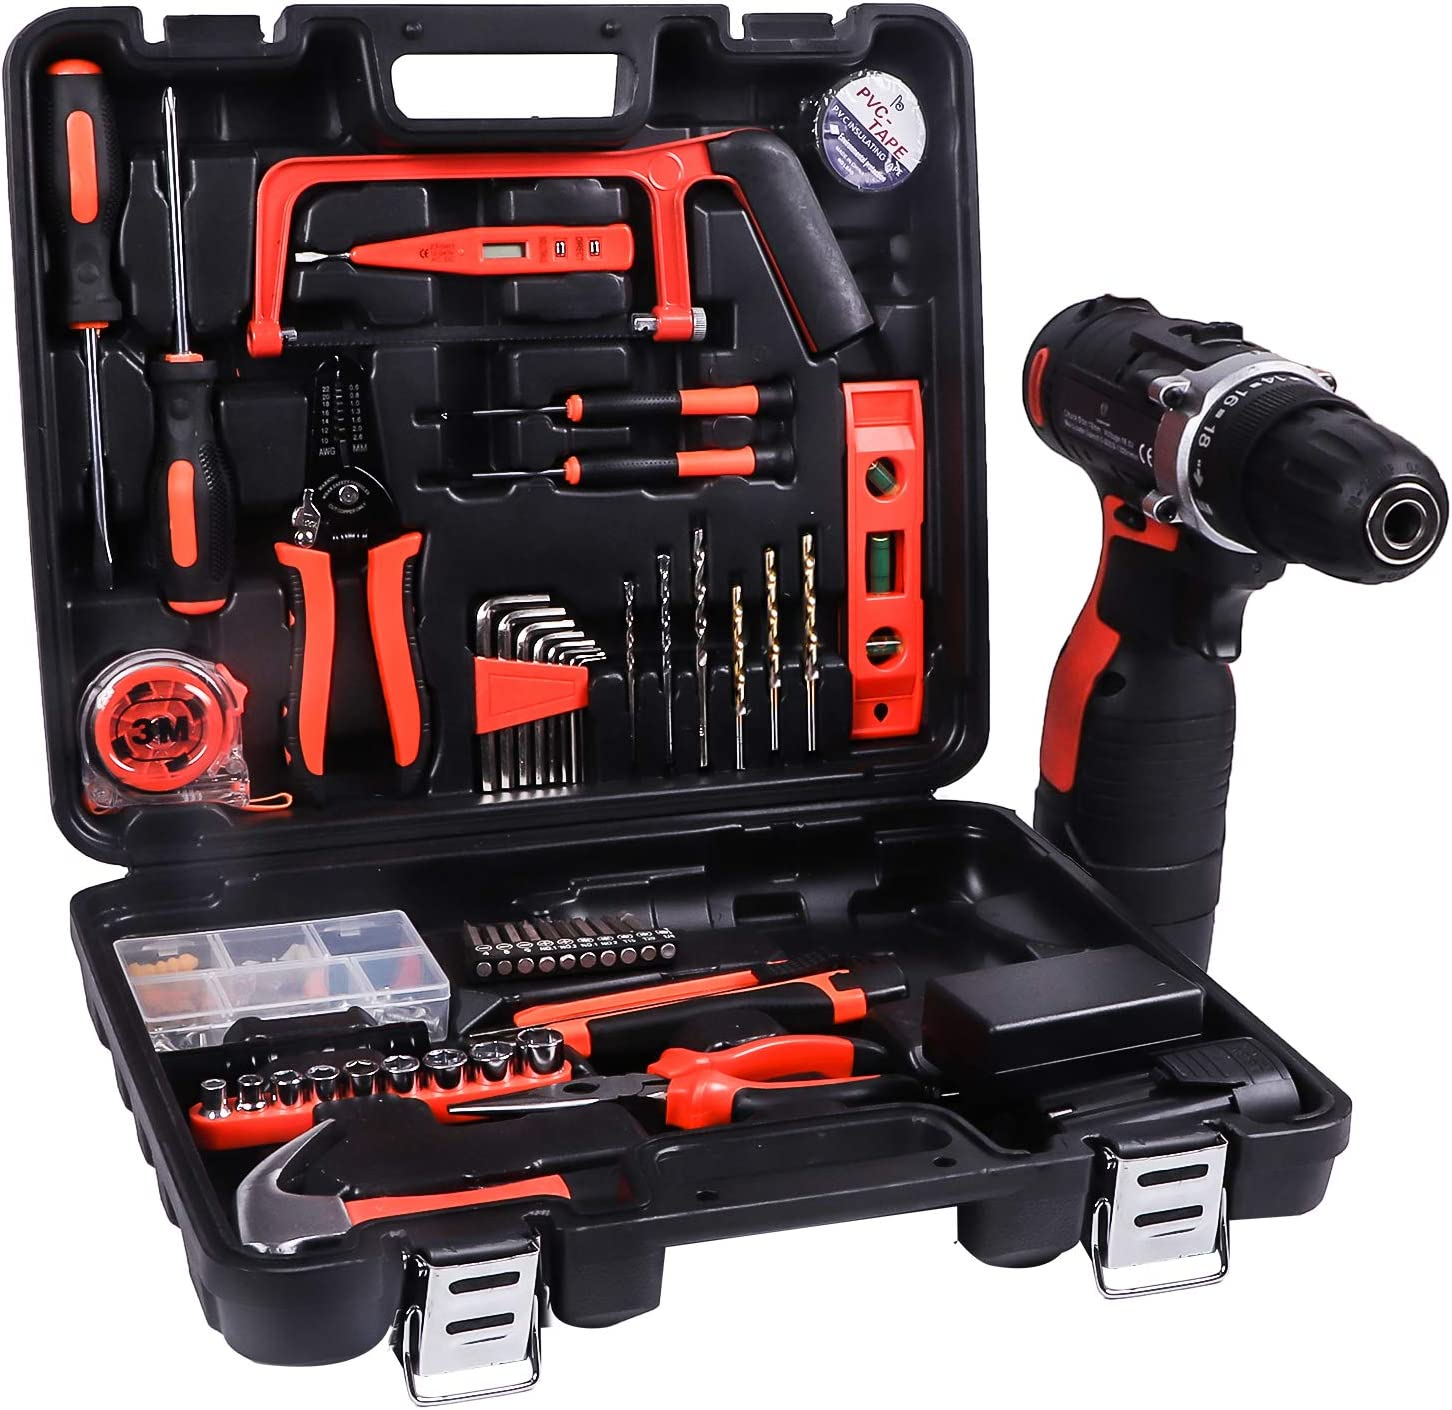 LETTON Power Tools Combo Kit with 60 Accessories 16.8V Cordless Drill for Home wireless Repair Kit Tool Set